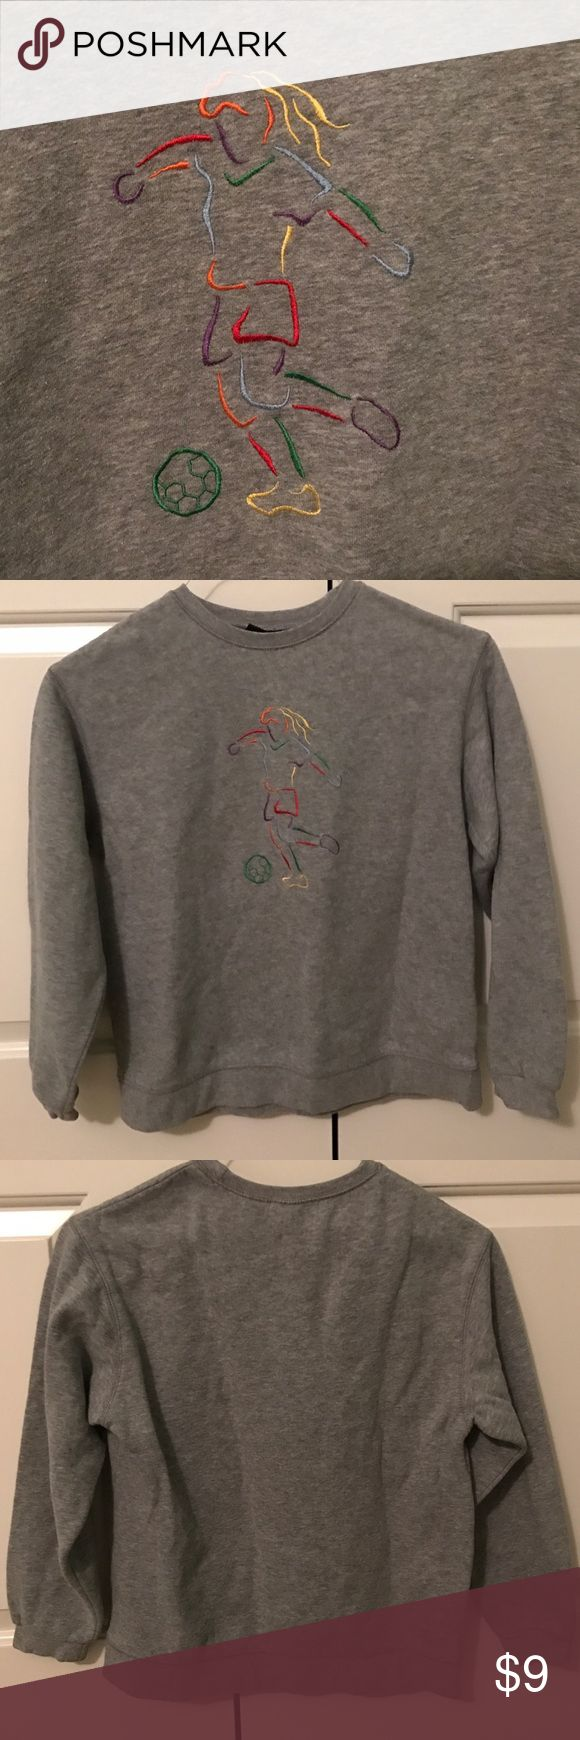 Girl's Soccer Sweatshirt Gray hoodie from Joe Boxer. No hood. Comfortable and fits well. Colorful image of a girl playing soccer on the front. Some sharpie near tags but otherwise in new condition (picture 4). Joe Boxer Shirts & Tops Sweatshirts & Hoodies